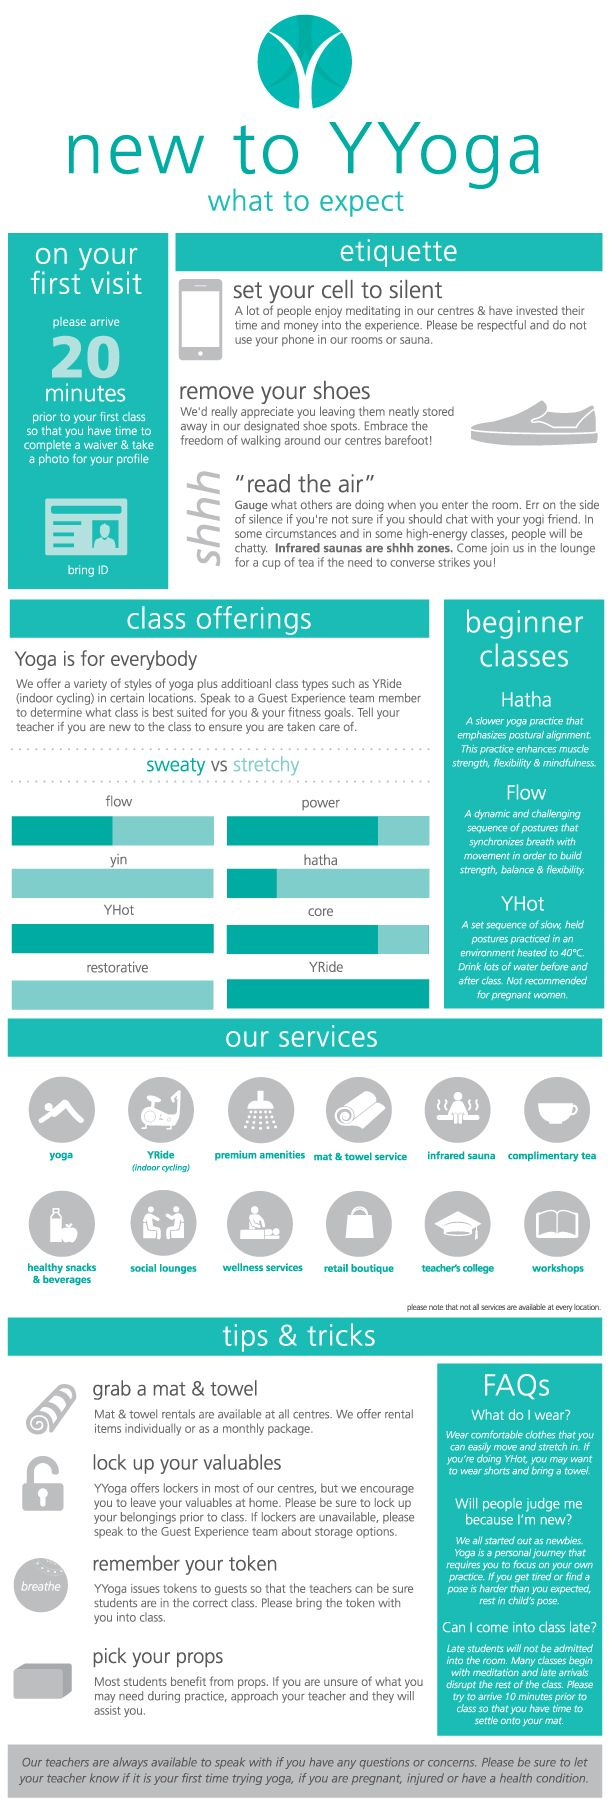 Are you feeling anxious about trying yoga? Is your ego getting in the way of you & your mat?   Read this new blog post: http://ow.ly/vHHma & use this #infographic to help ease you into your practice. #newtoyoga #yoga #yyoga